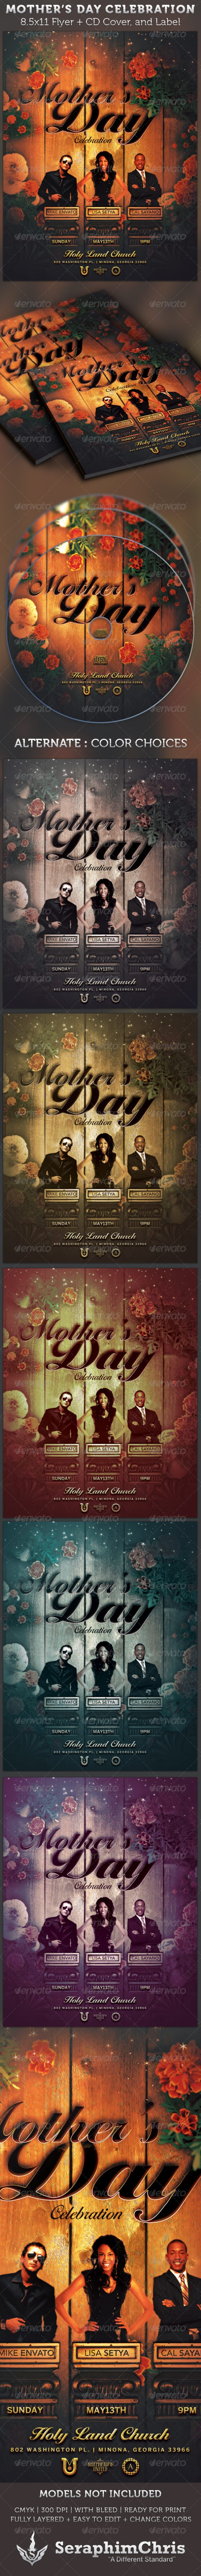 Mother's Day Celebration Flyer and CD Cover - Church Flyers